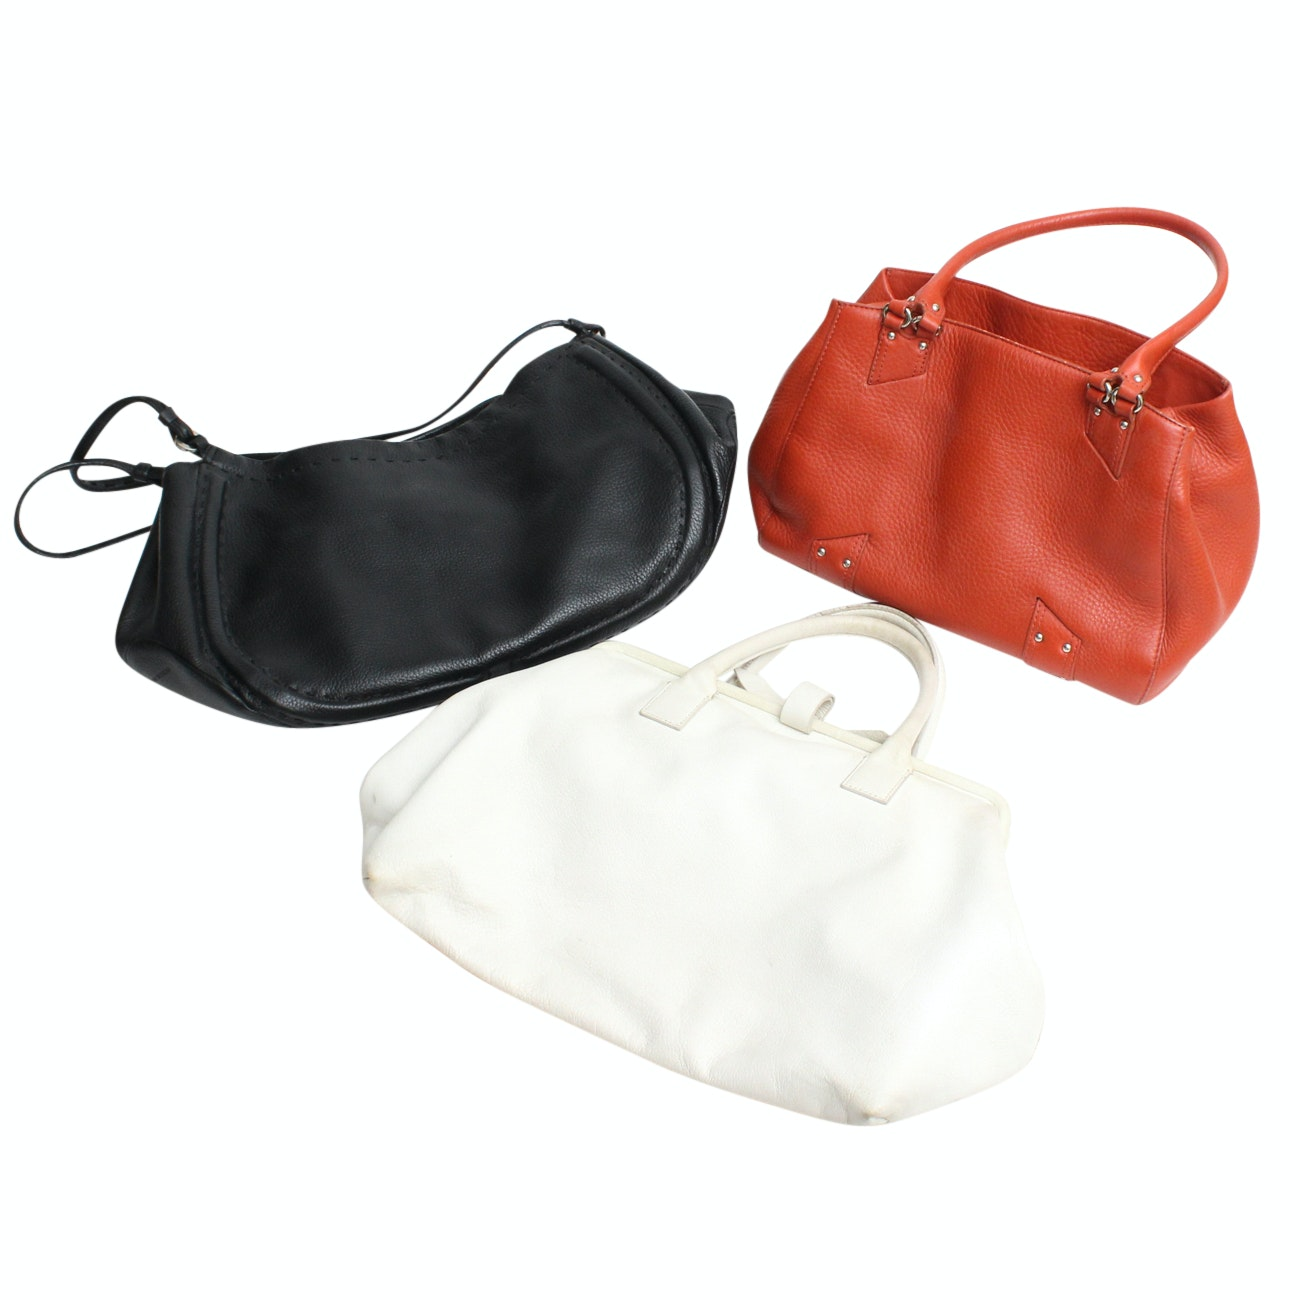 Cole Haan, Adrienne Vittadini and DKNY Leather Handbags